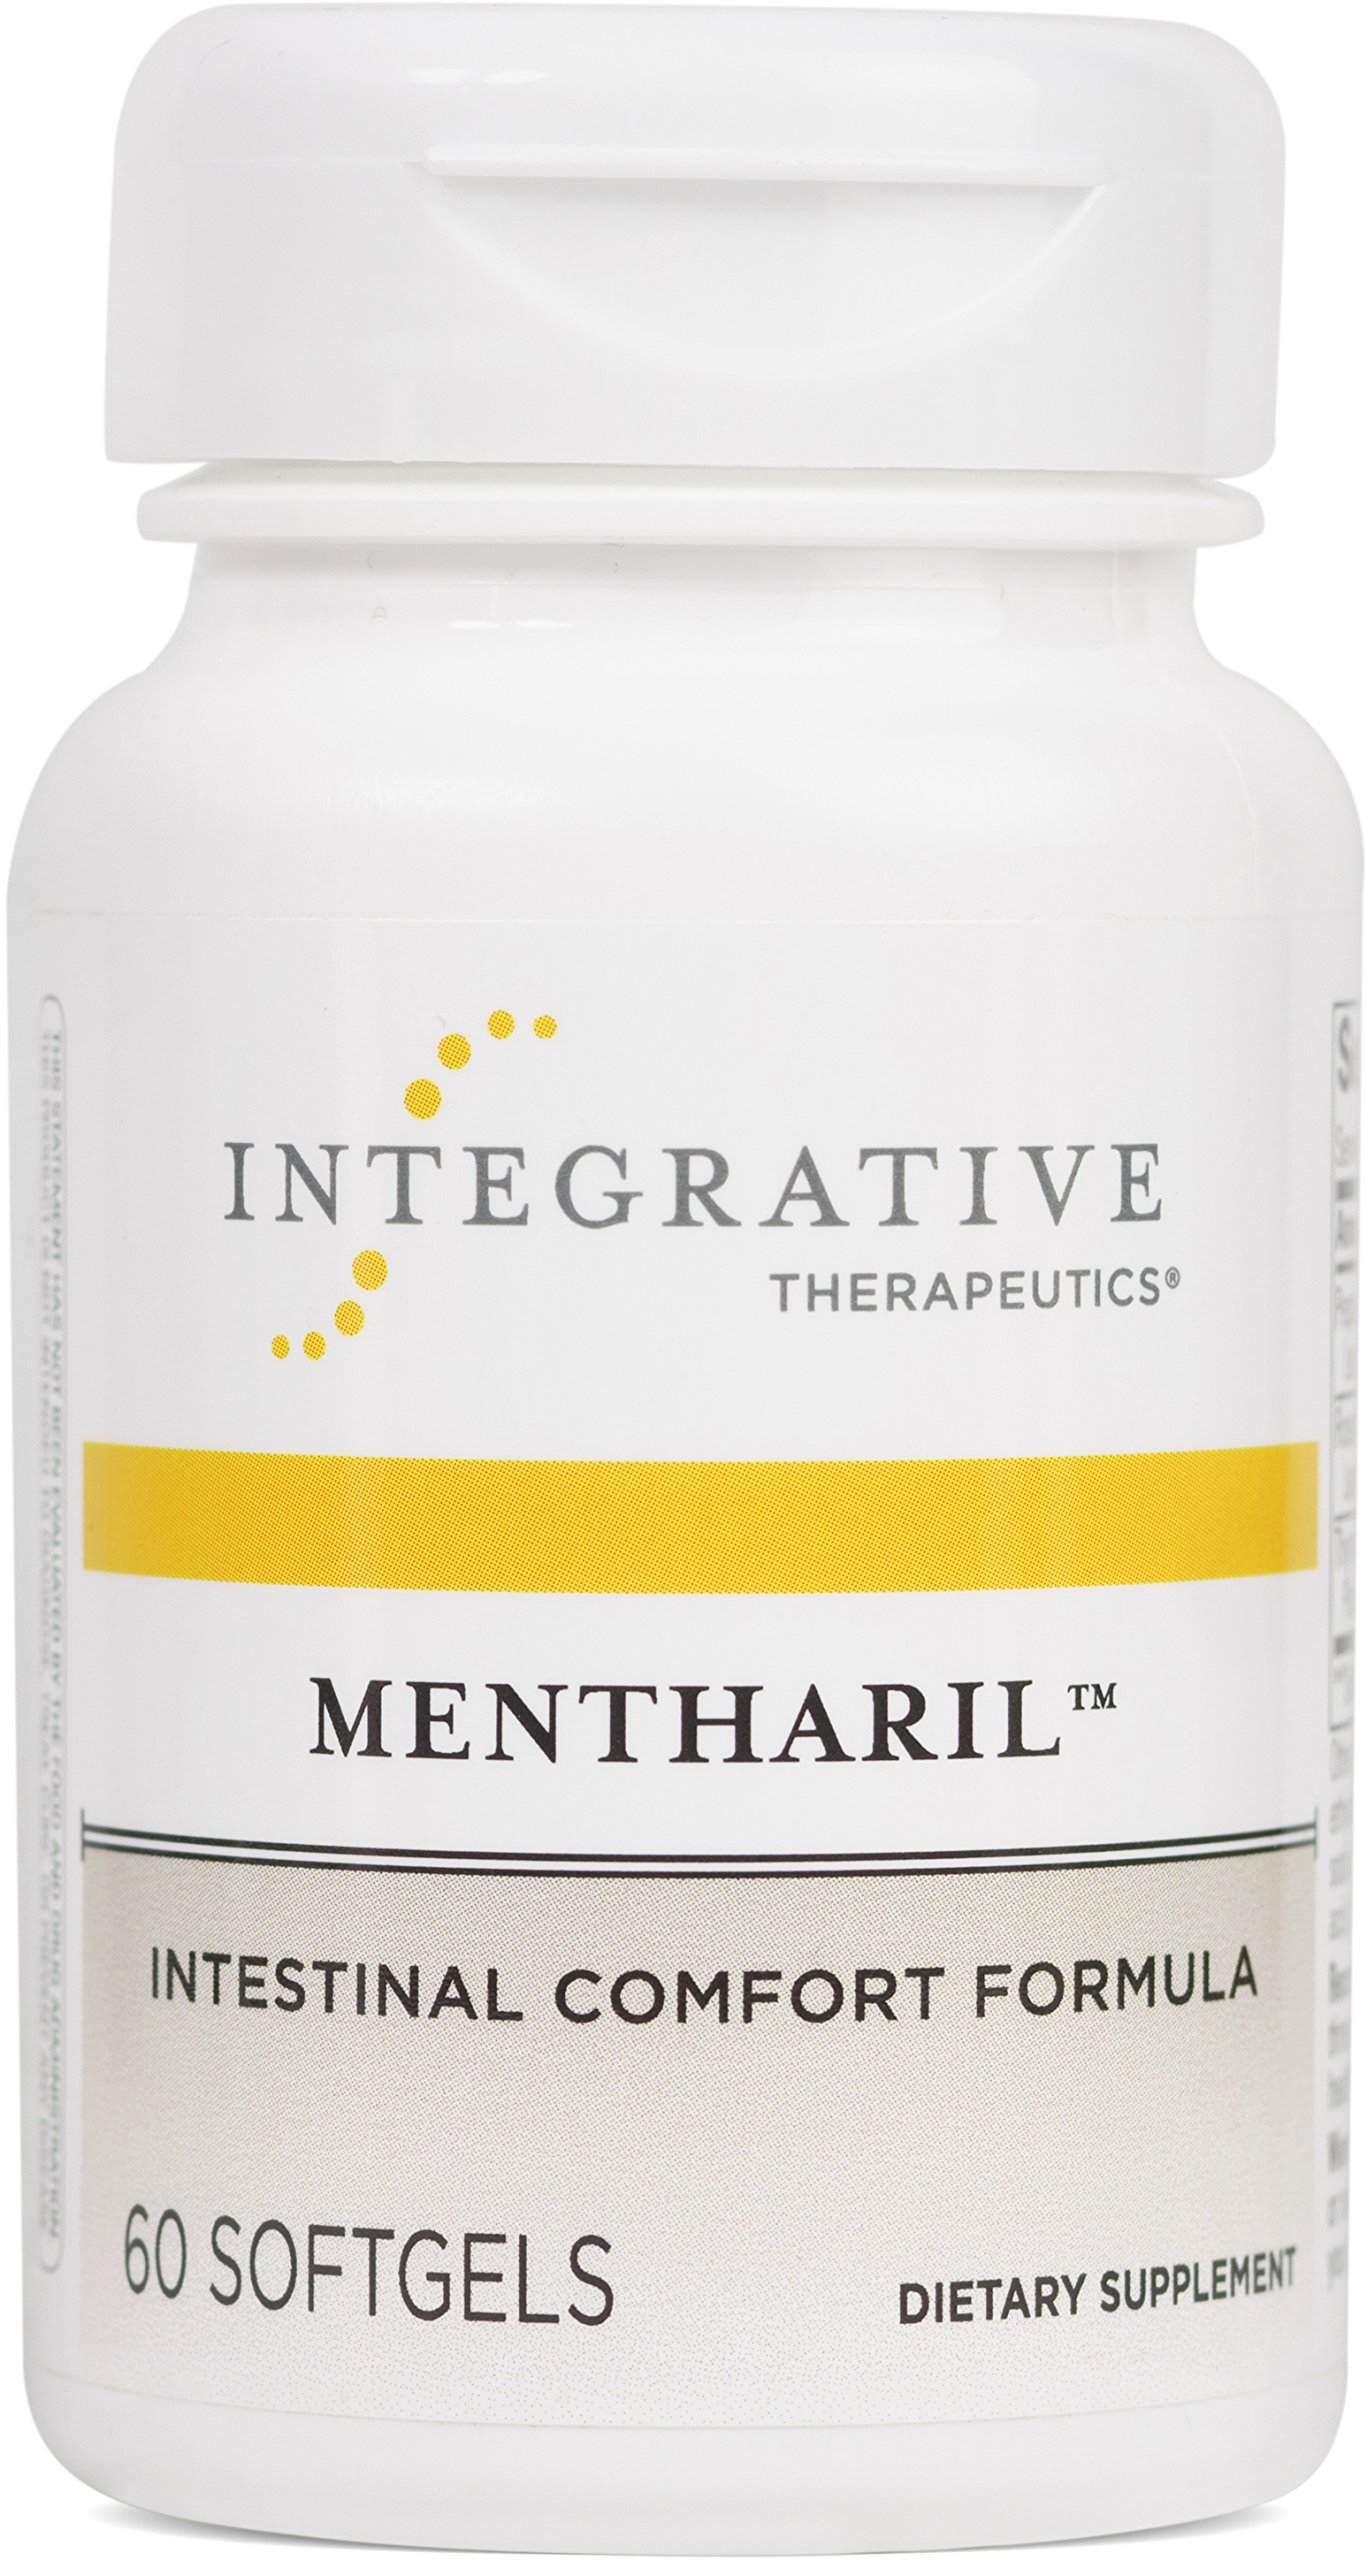 Integrative Therapeutics - Mentharil - Intestinal Comfort Formula with Peppermint, Rosemary, and Thyme Extracts - 60 Enteric-Coated Softgels